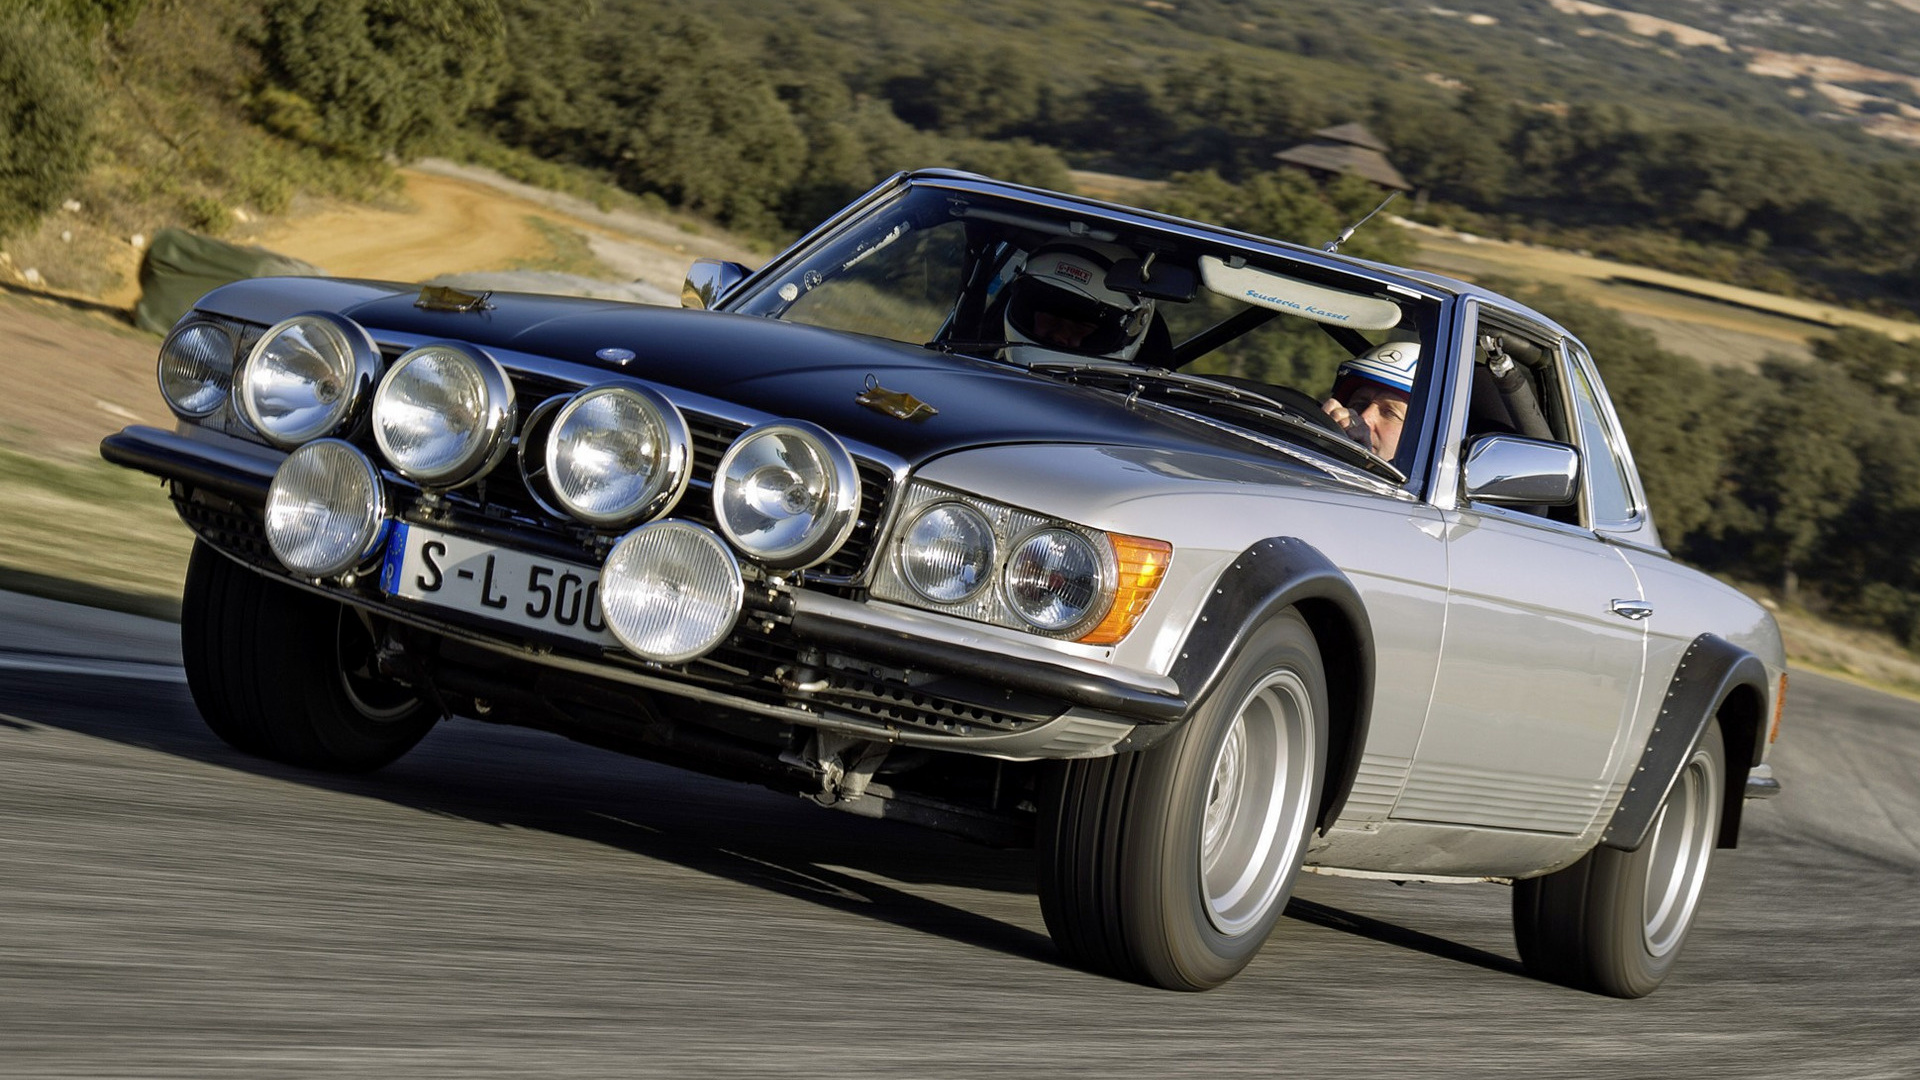 1980 Mercedes-Benz 500 SL Rallye - Wallpapers and HD ...